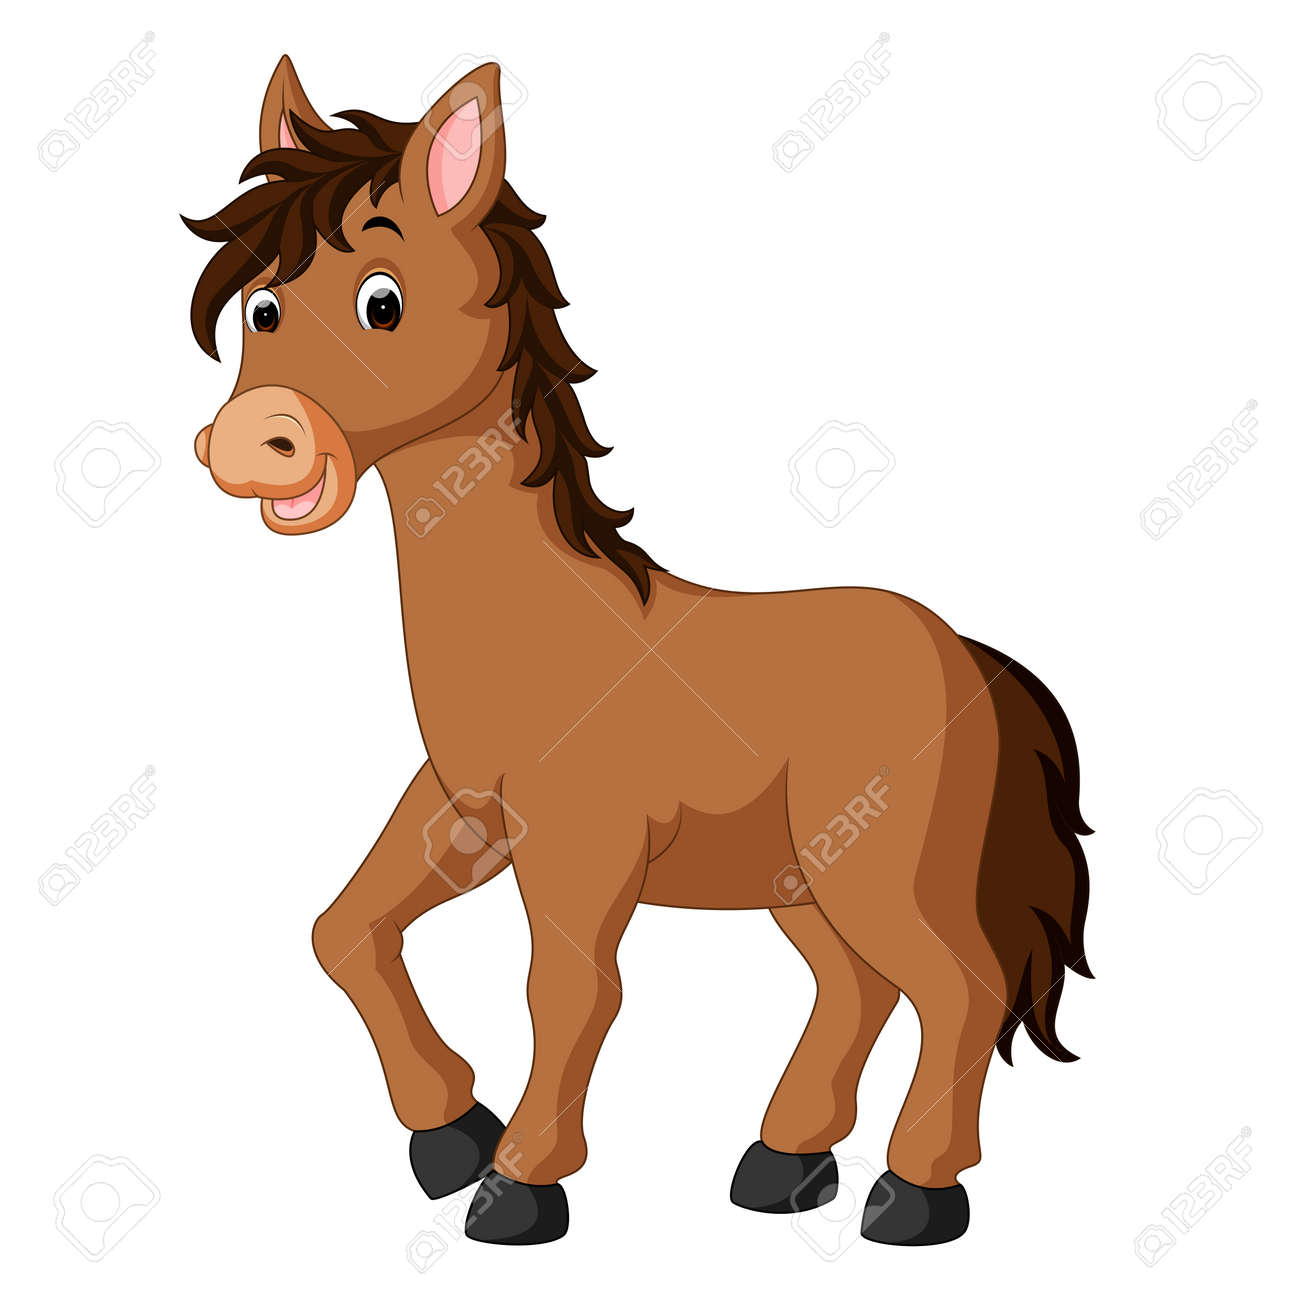 Happy horse cartoon stock photo picture and royalty free image happy horse cartoon stock photo 80905576 publicscrutiny Choice Image